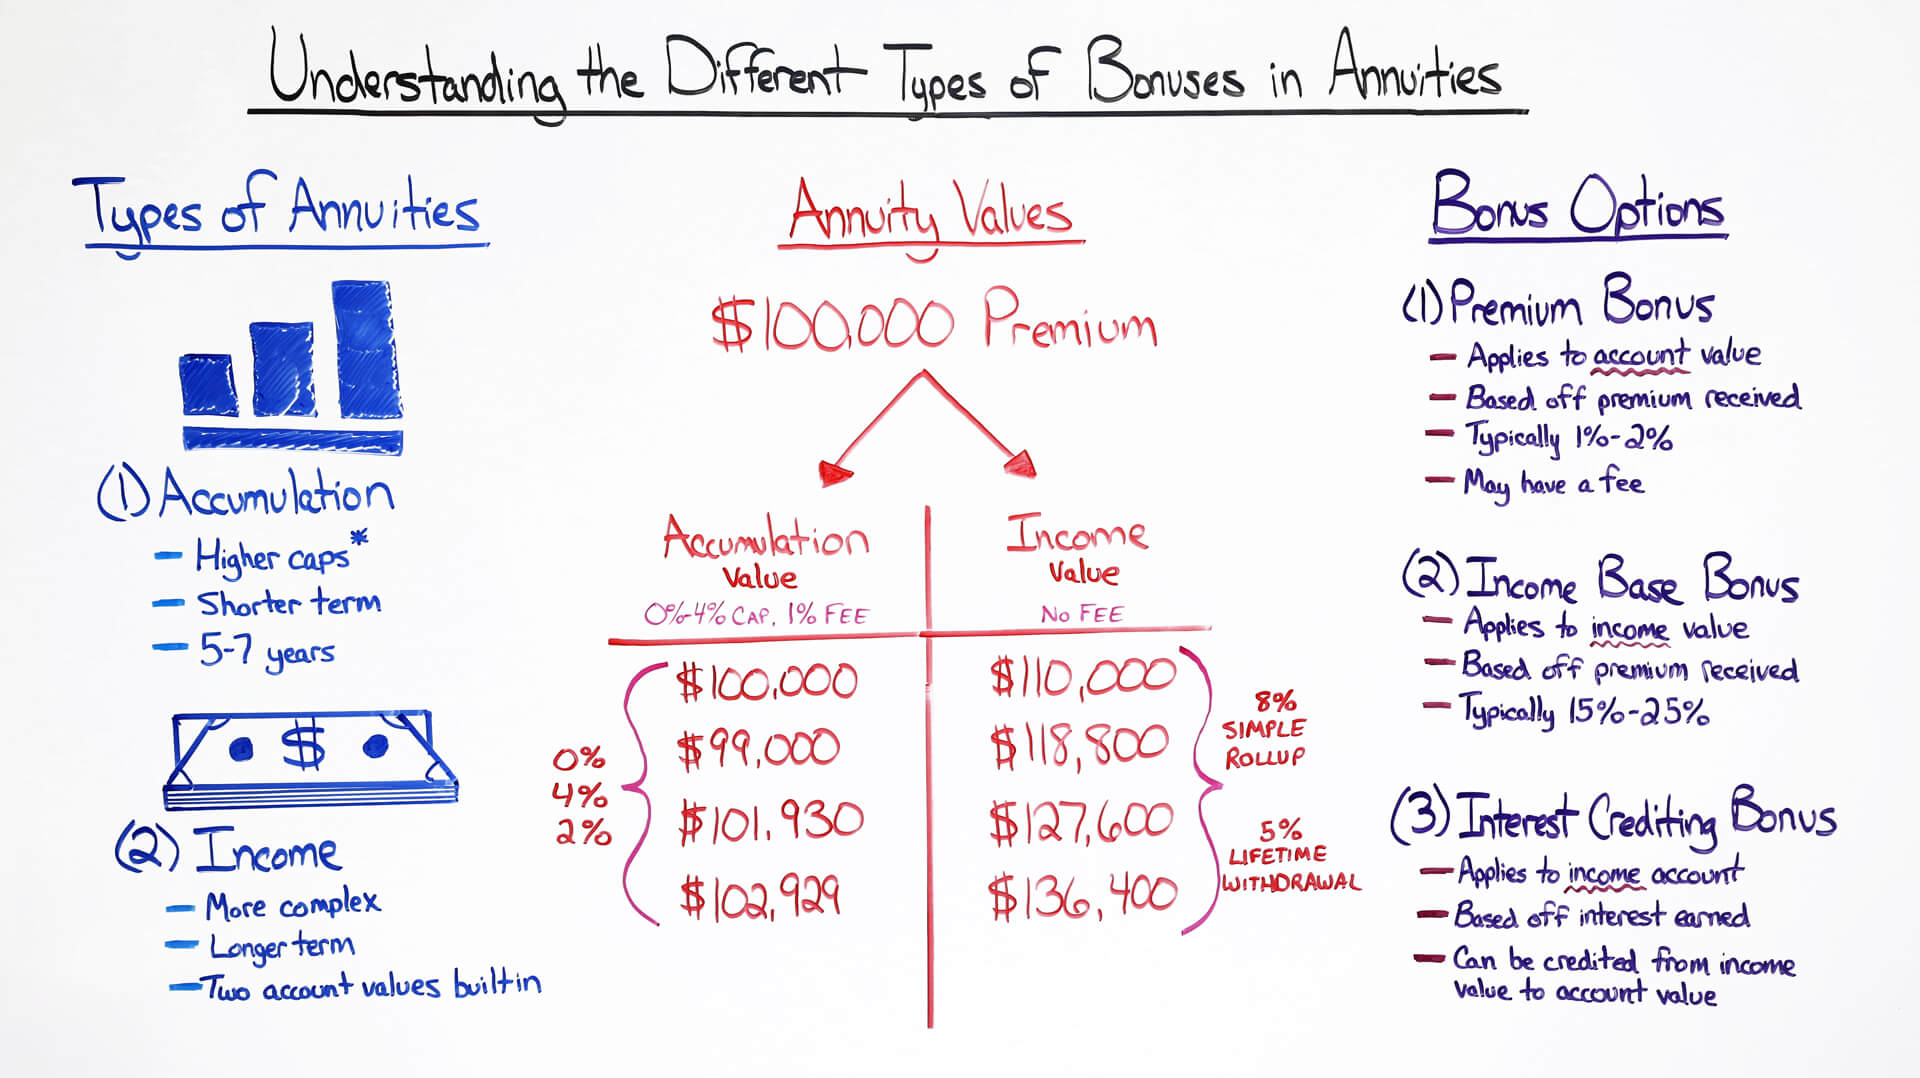 understanding the different types of bonuses in annuities